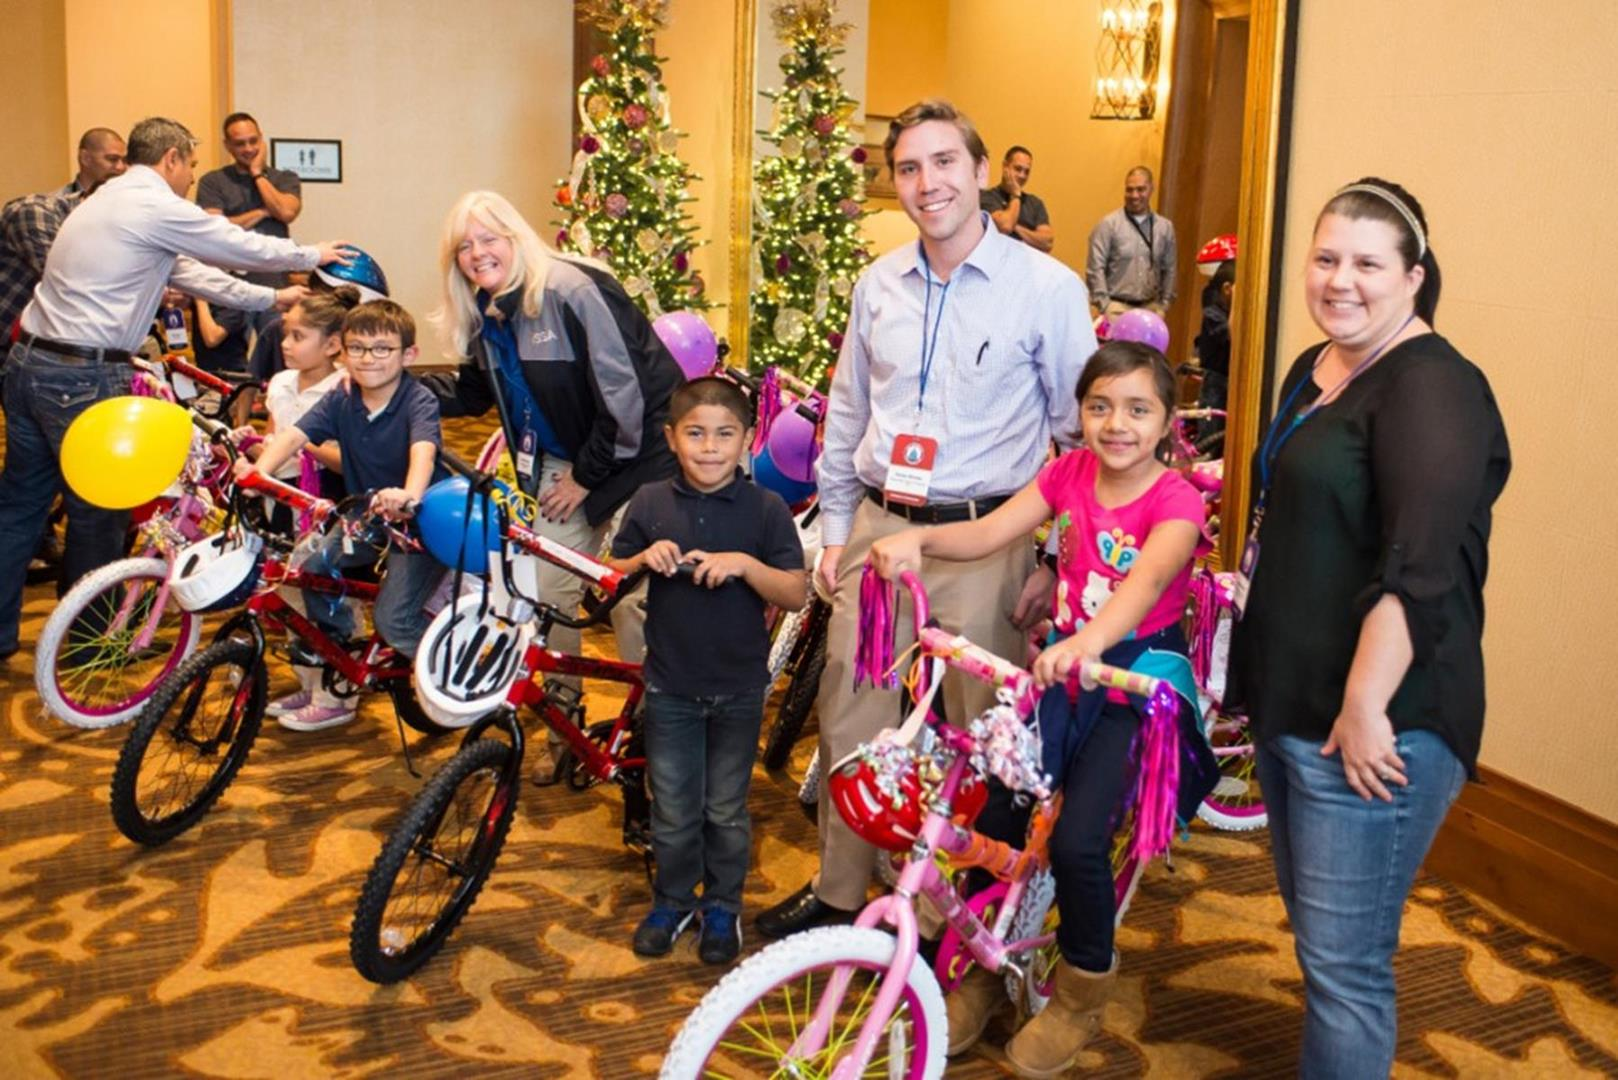 Parker Medley from Marco Island/Naples Sports helps kids choose a bike.